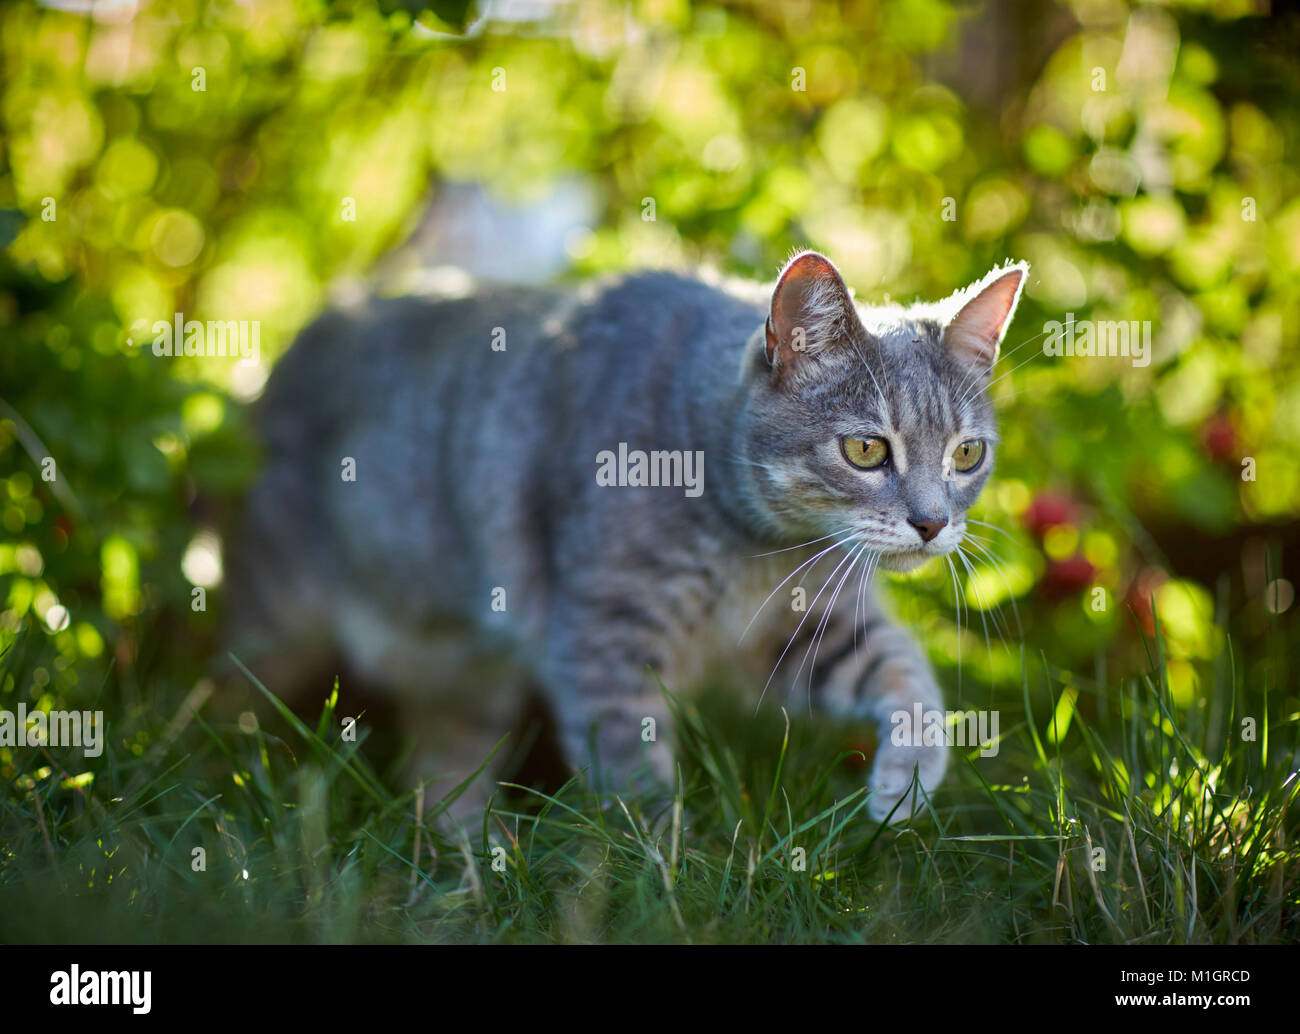 Domestic cat. Gray tabby adult walking in grass. Germany. Stock Photo